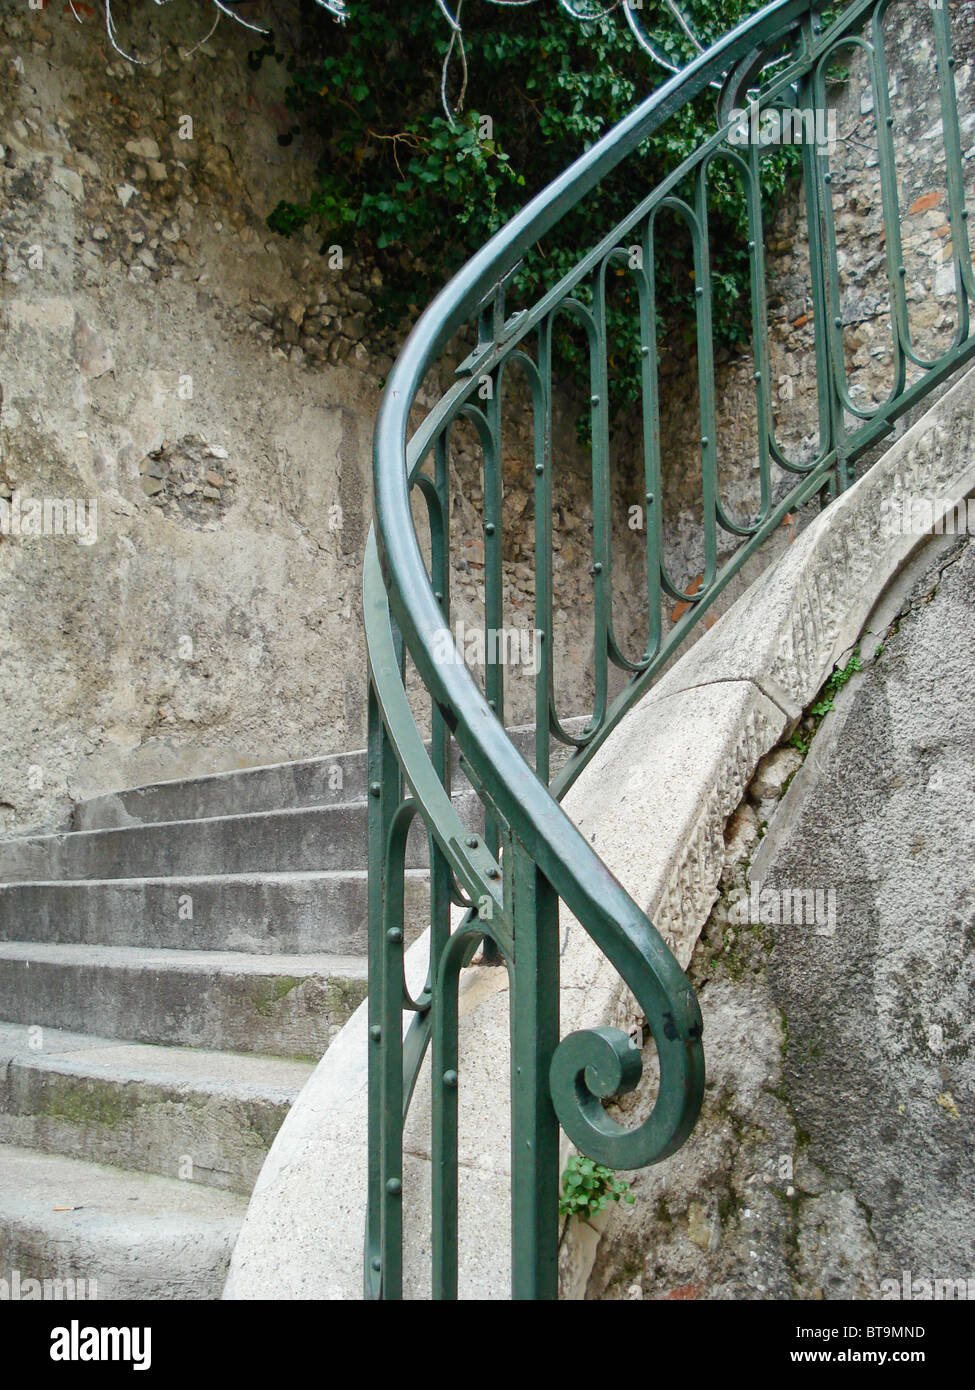 Cast Iron railing, on external stair case, Neoclassicism in style, Nice France - Stock Image